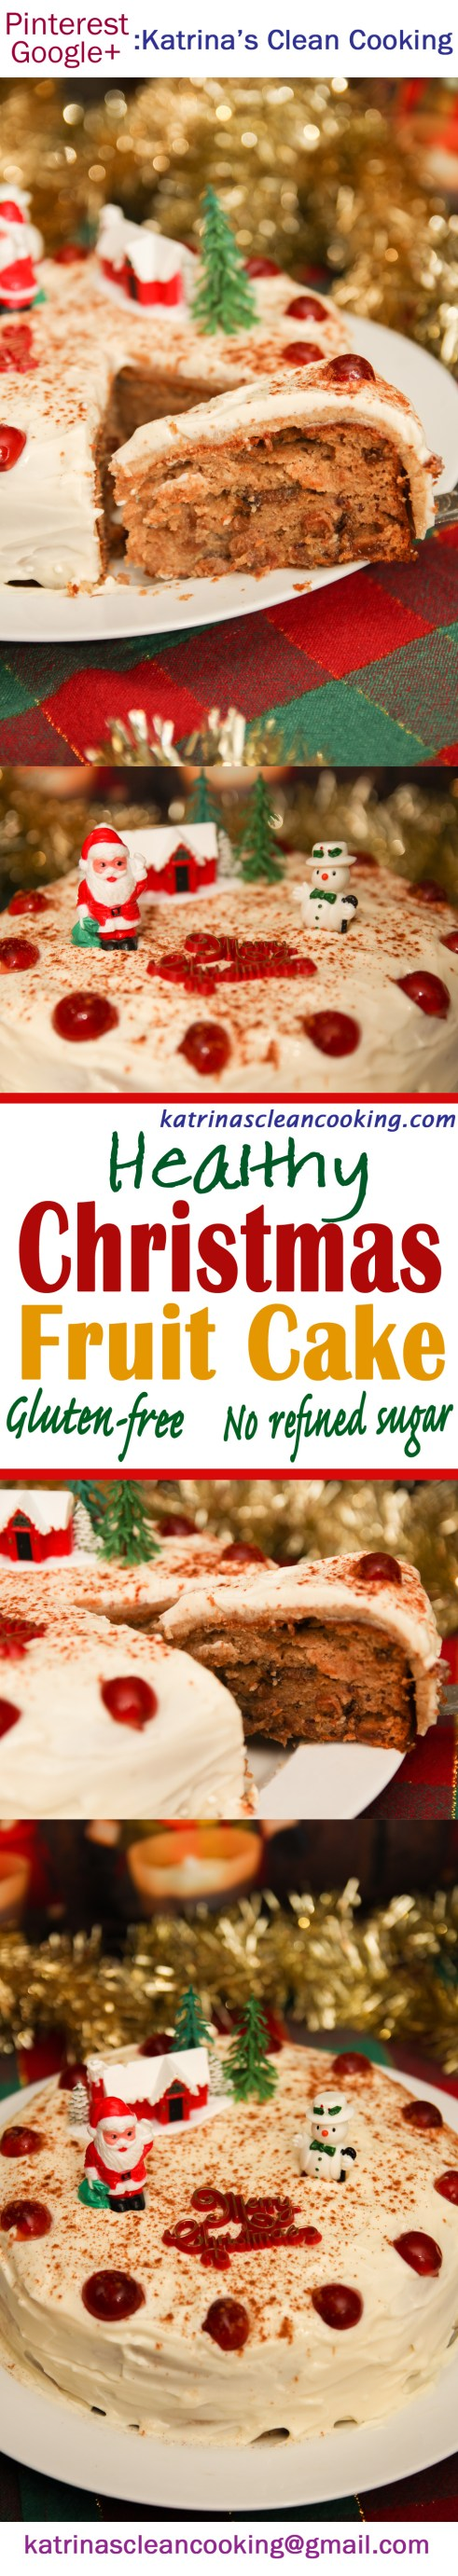 Healthy Christmas Fruit Cake #healthy #christmas #glutenfree #refinedsugarfree